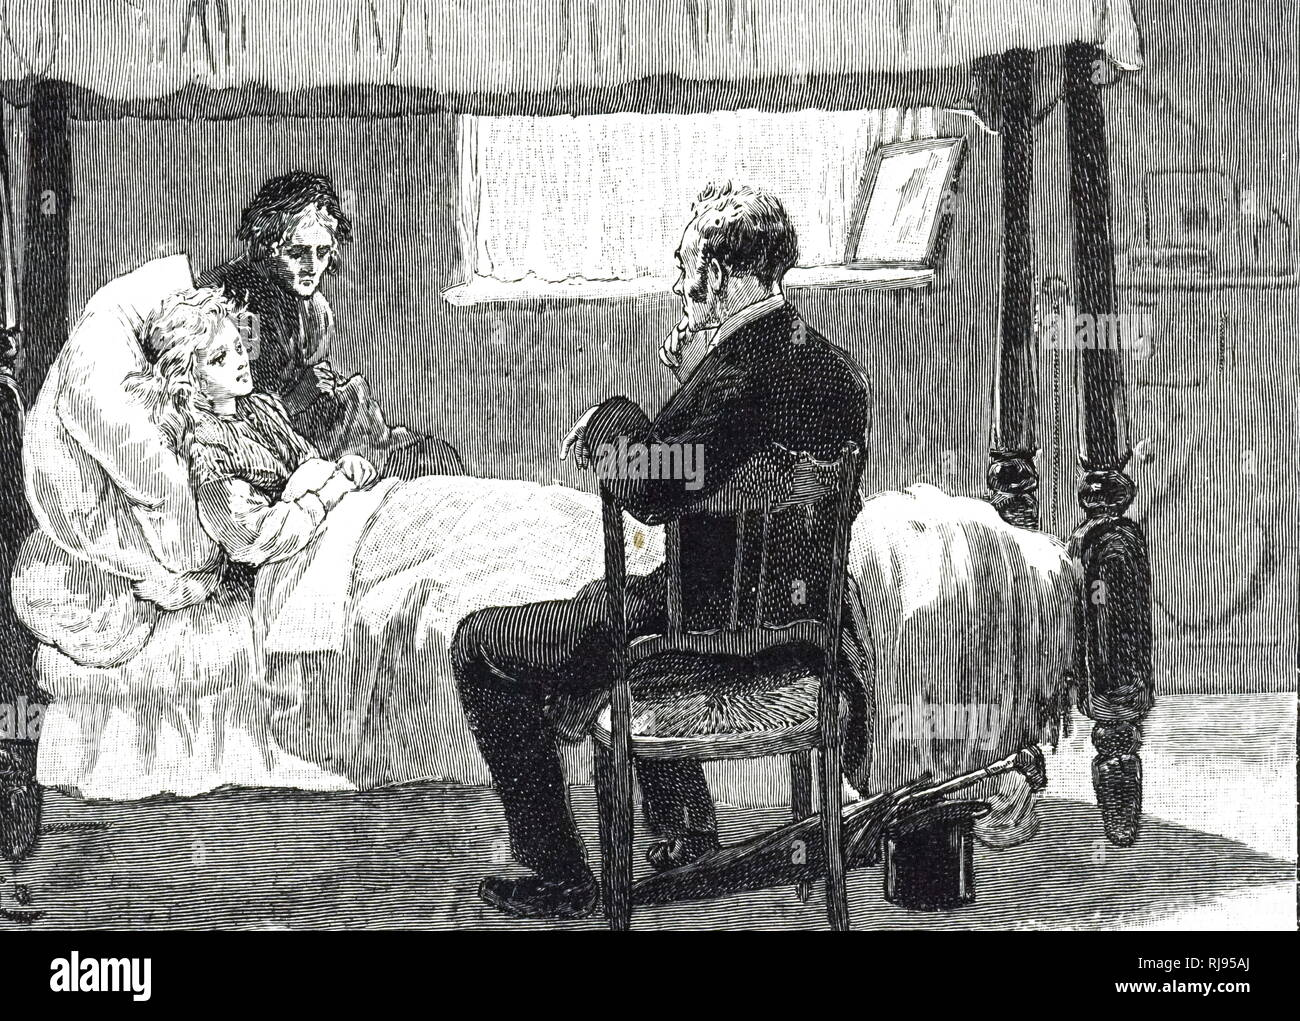 An engraving depicting a sickly woman, most likely suffering from consumption, resting in bed. Dated 19th century - Stock Image